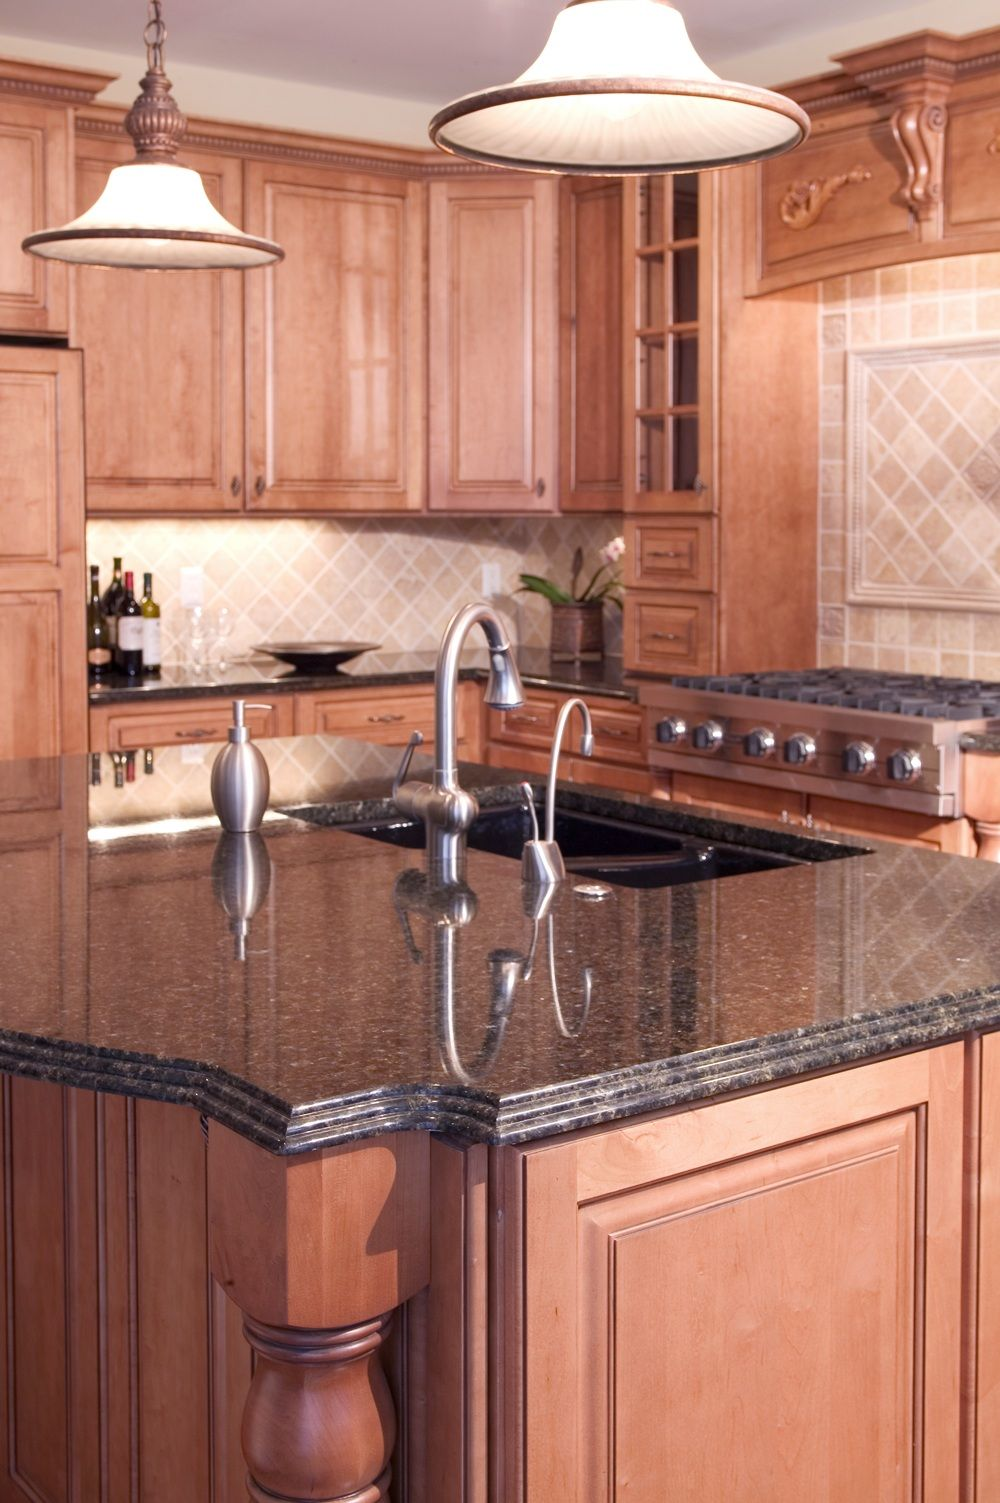 Granite Colors For Kitchen Kitchen Cabinets And Countertops Beige Granite Countertop Colors